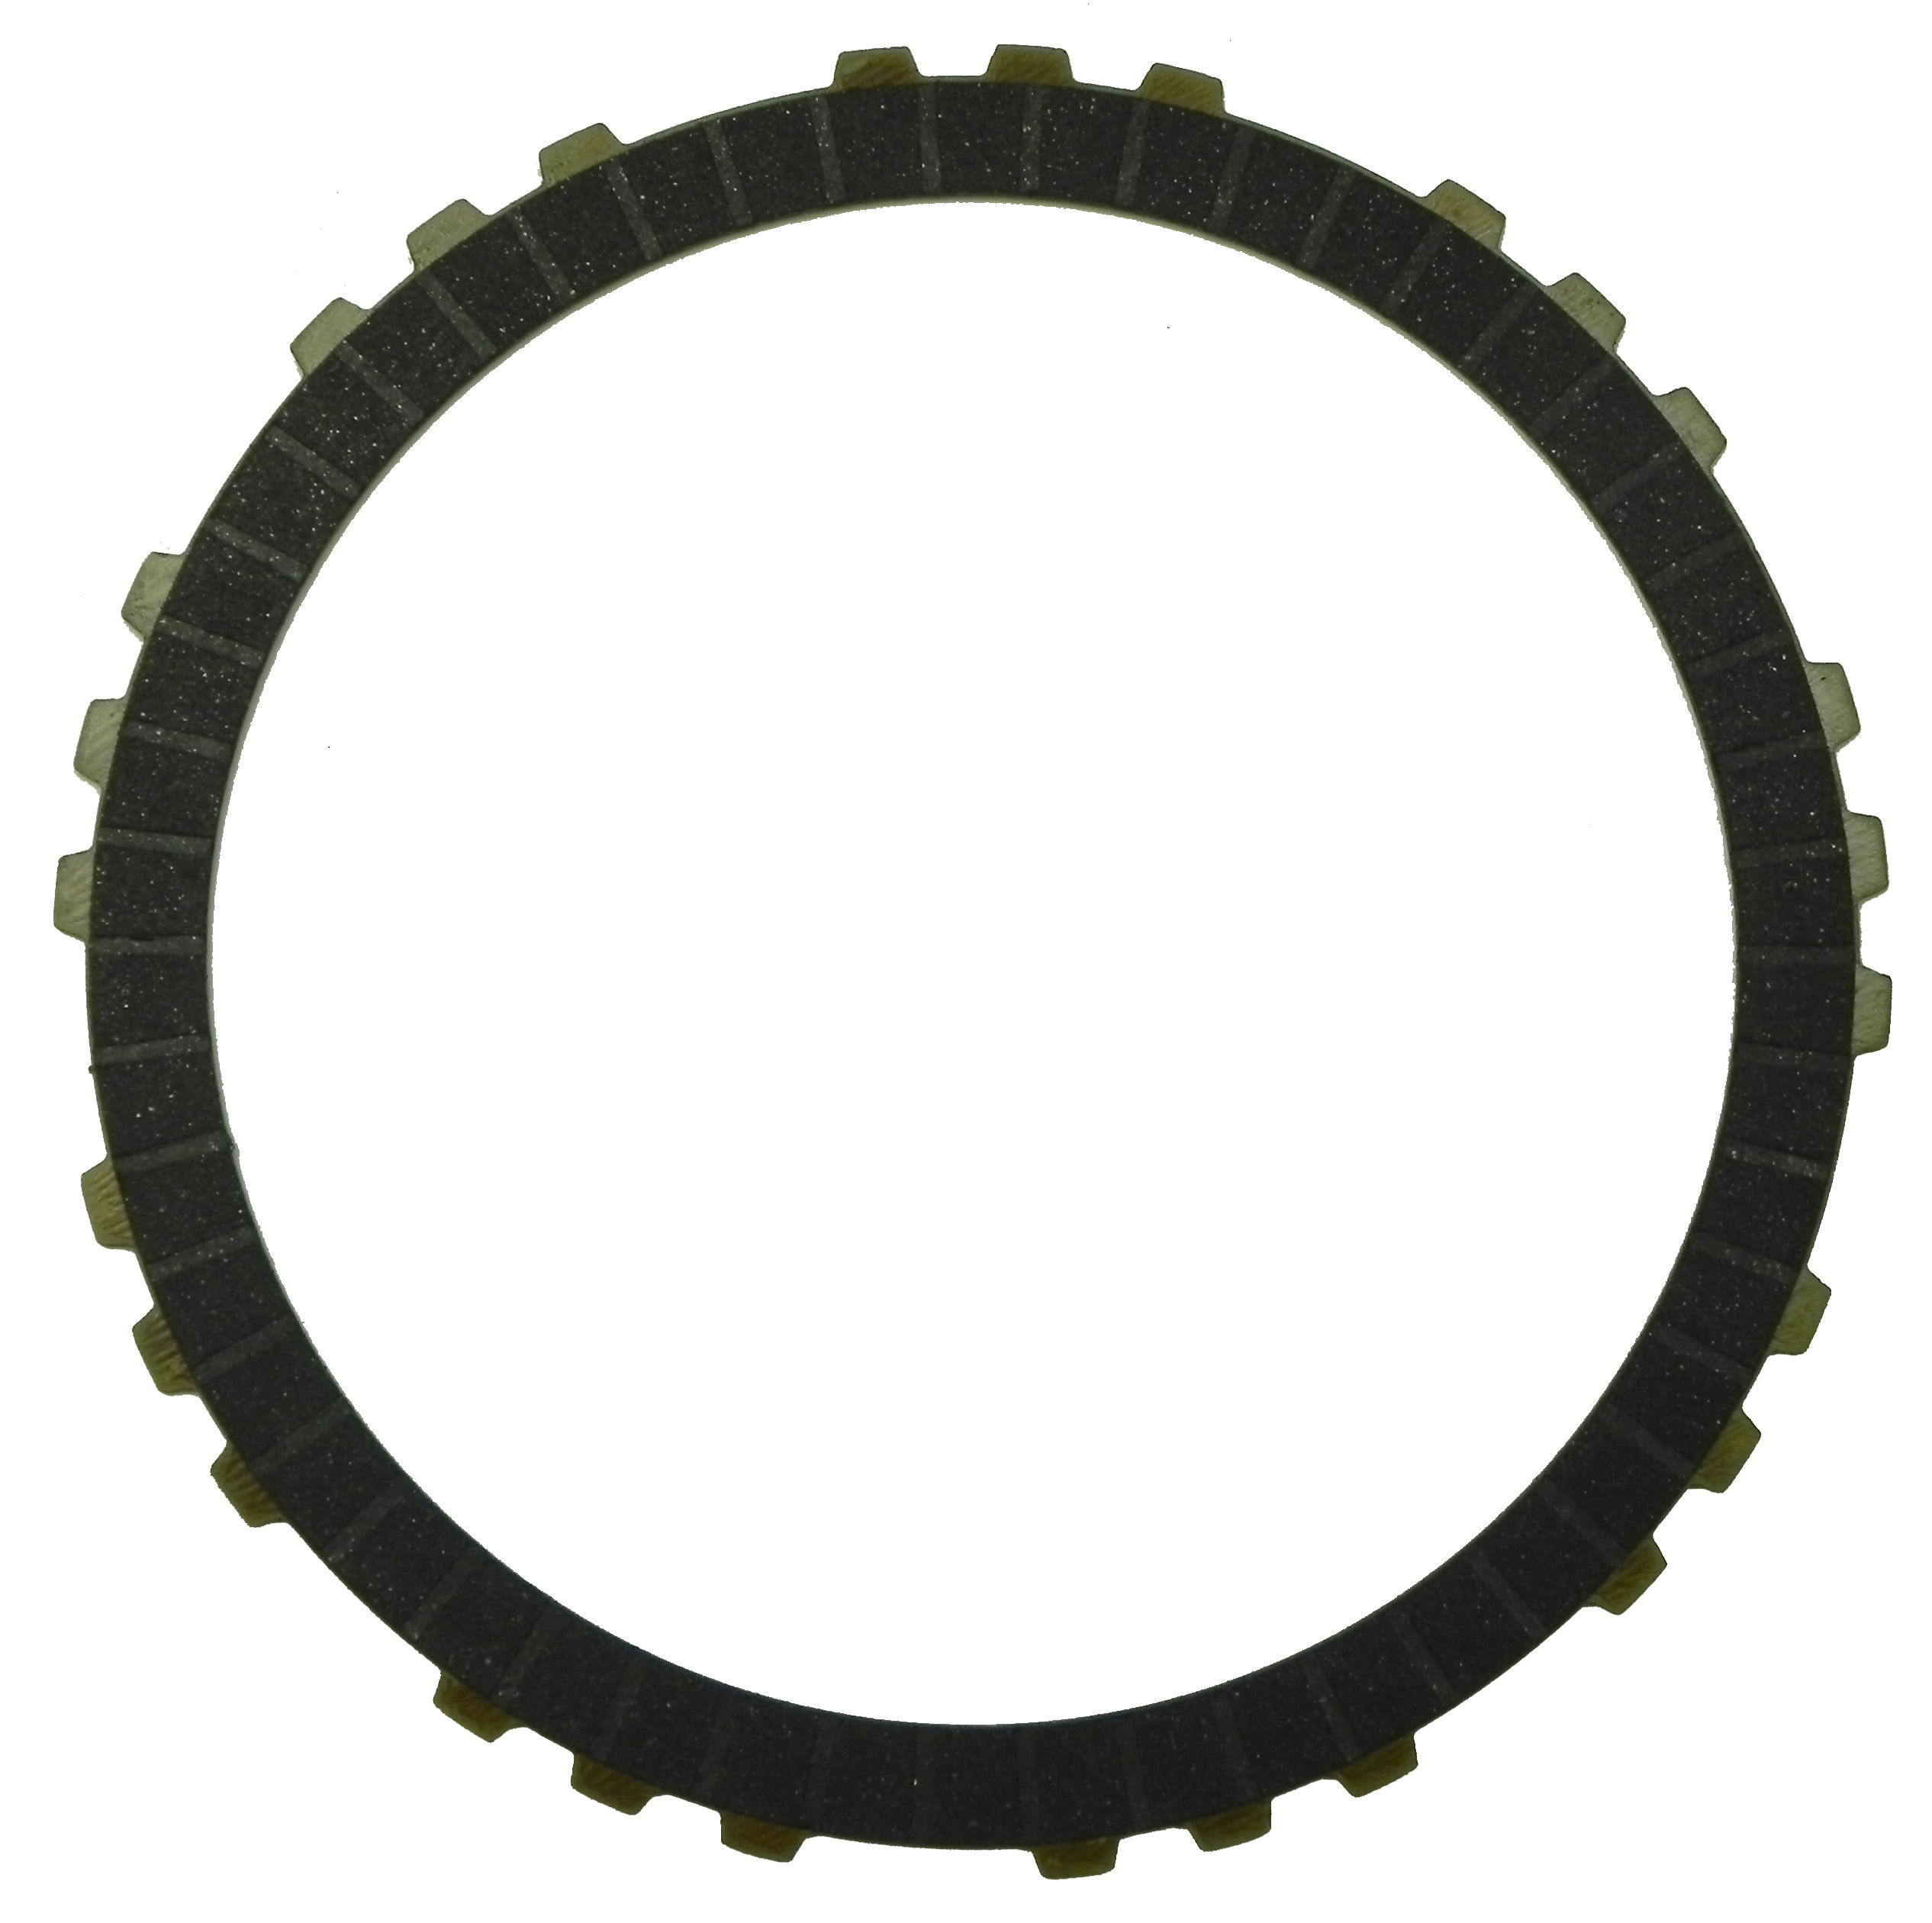 6F24, A6MF1, A6MF2 High Energy Friction Clutch Plate